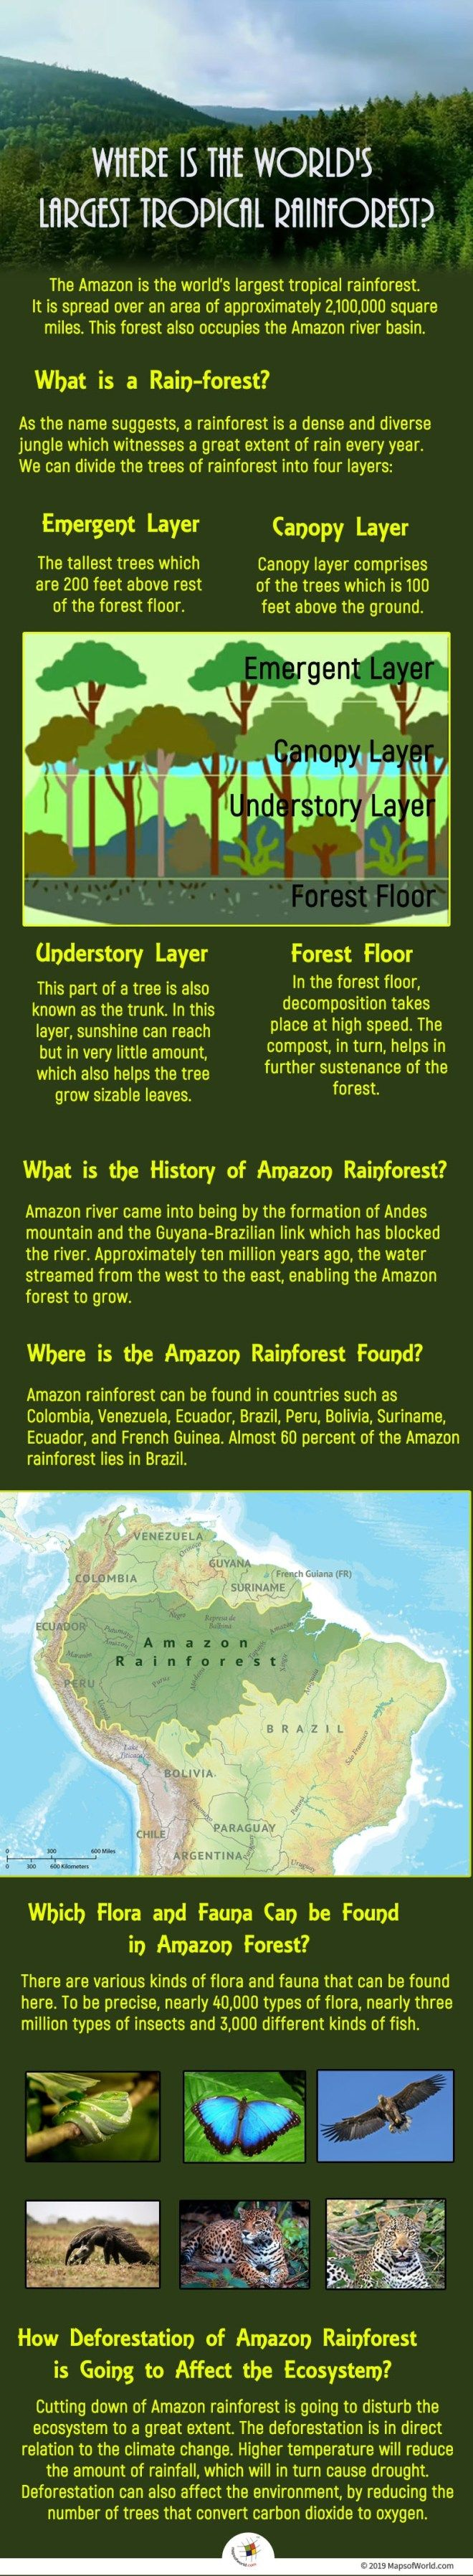 Where is the World's Largest Tropical Rainforest